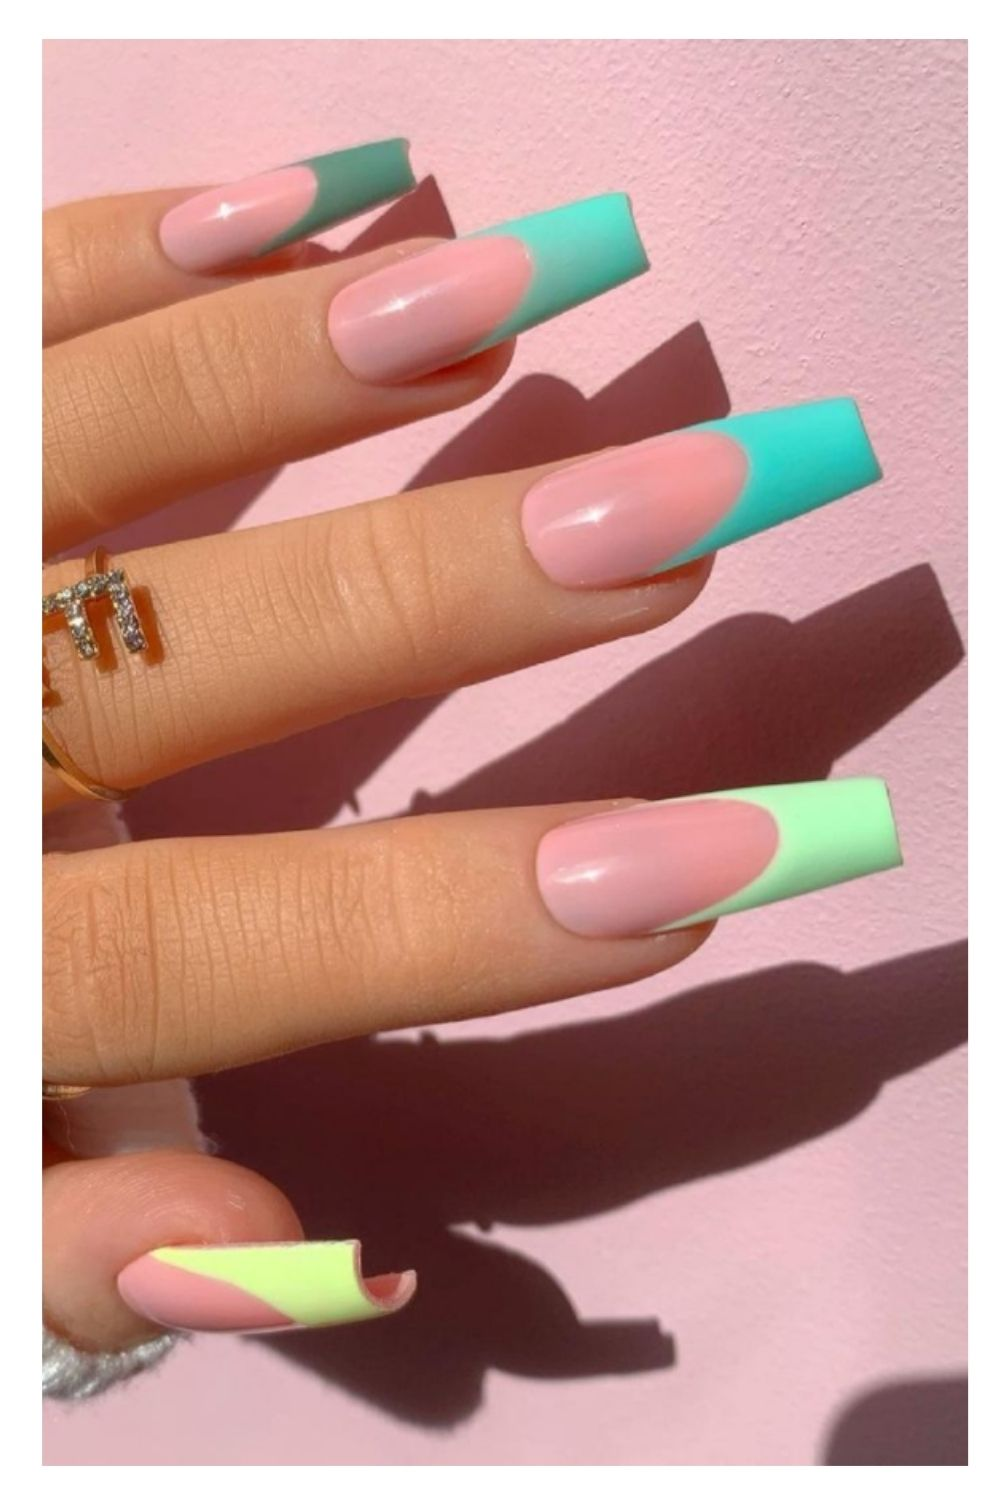 30 Best Summer Nail Designs and Ideas For April 2021